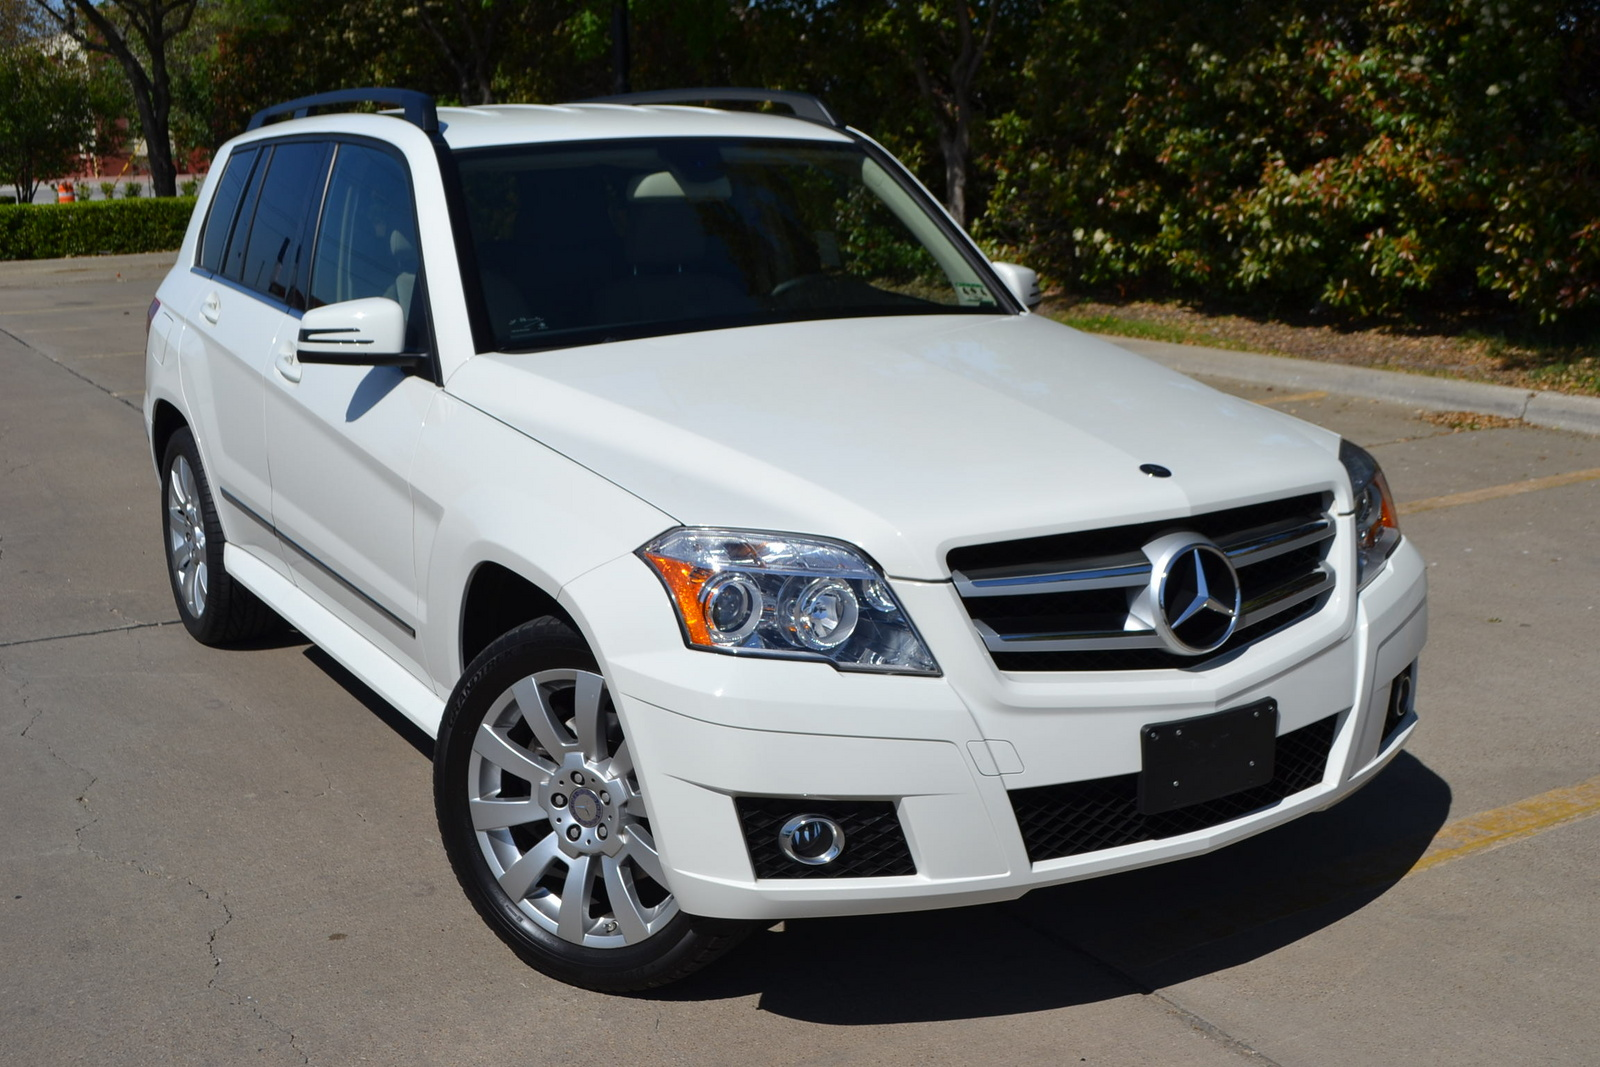 2010 mercedes benz glk class pictures cargurus for 2010 mercedes benz glk